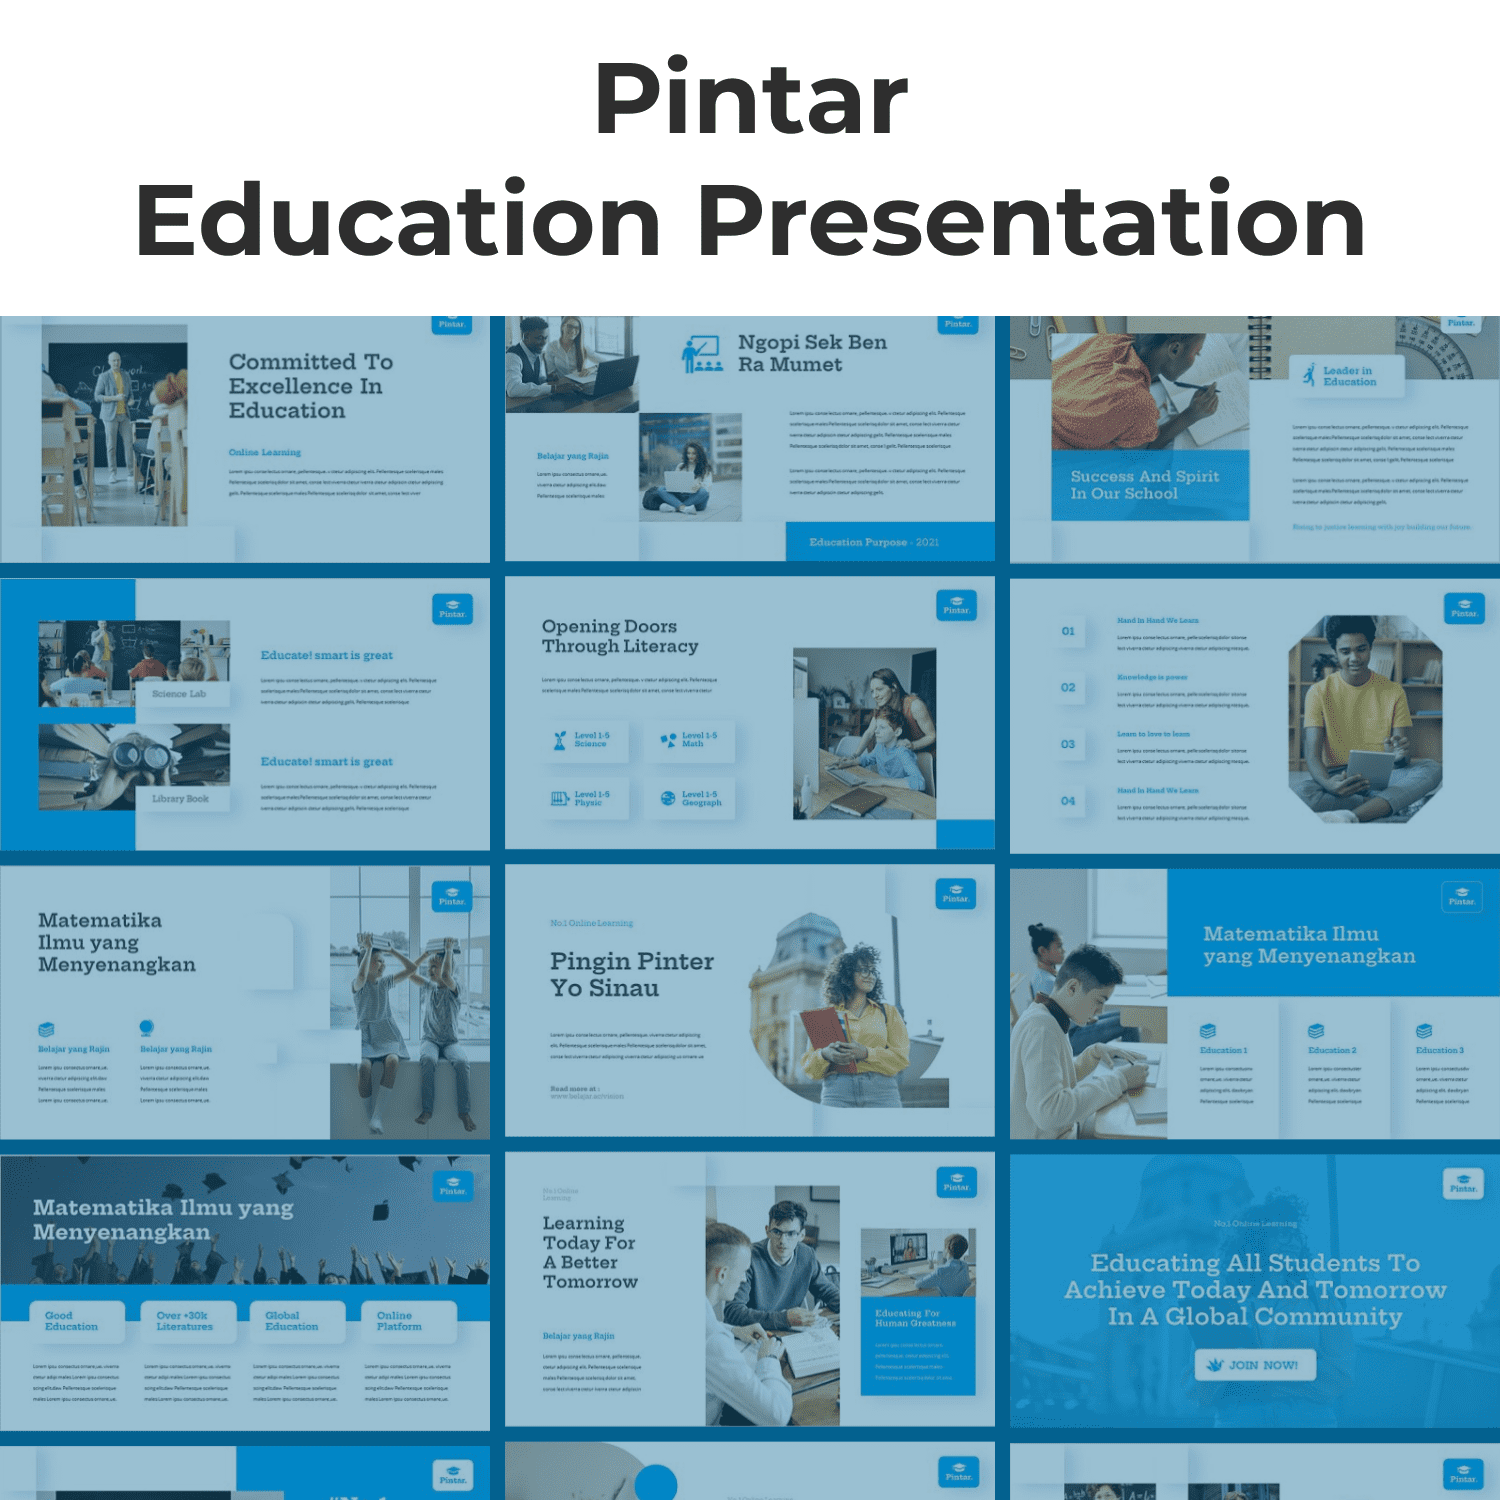 Pintar - Education Powerpoint cover image.